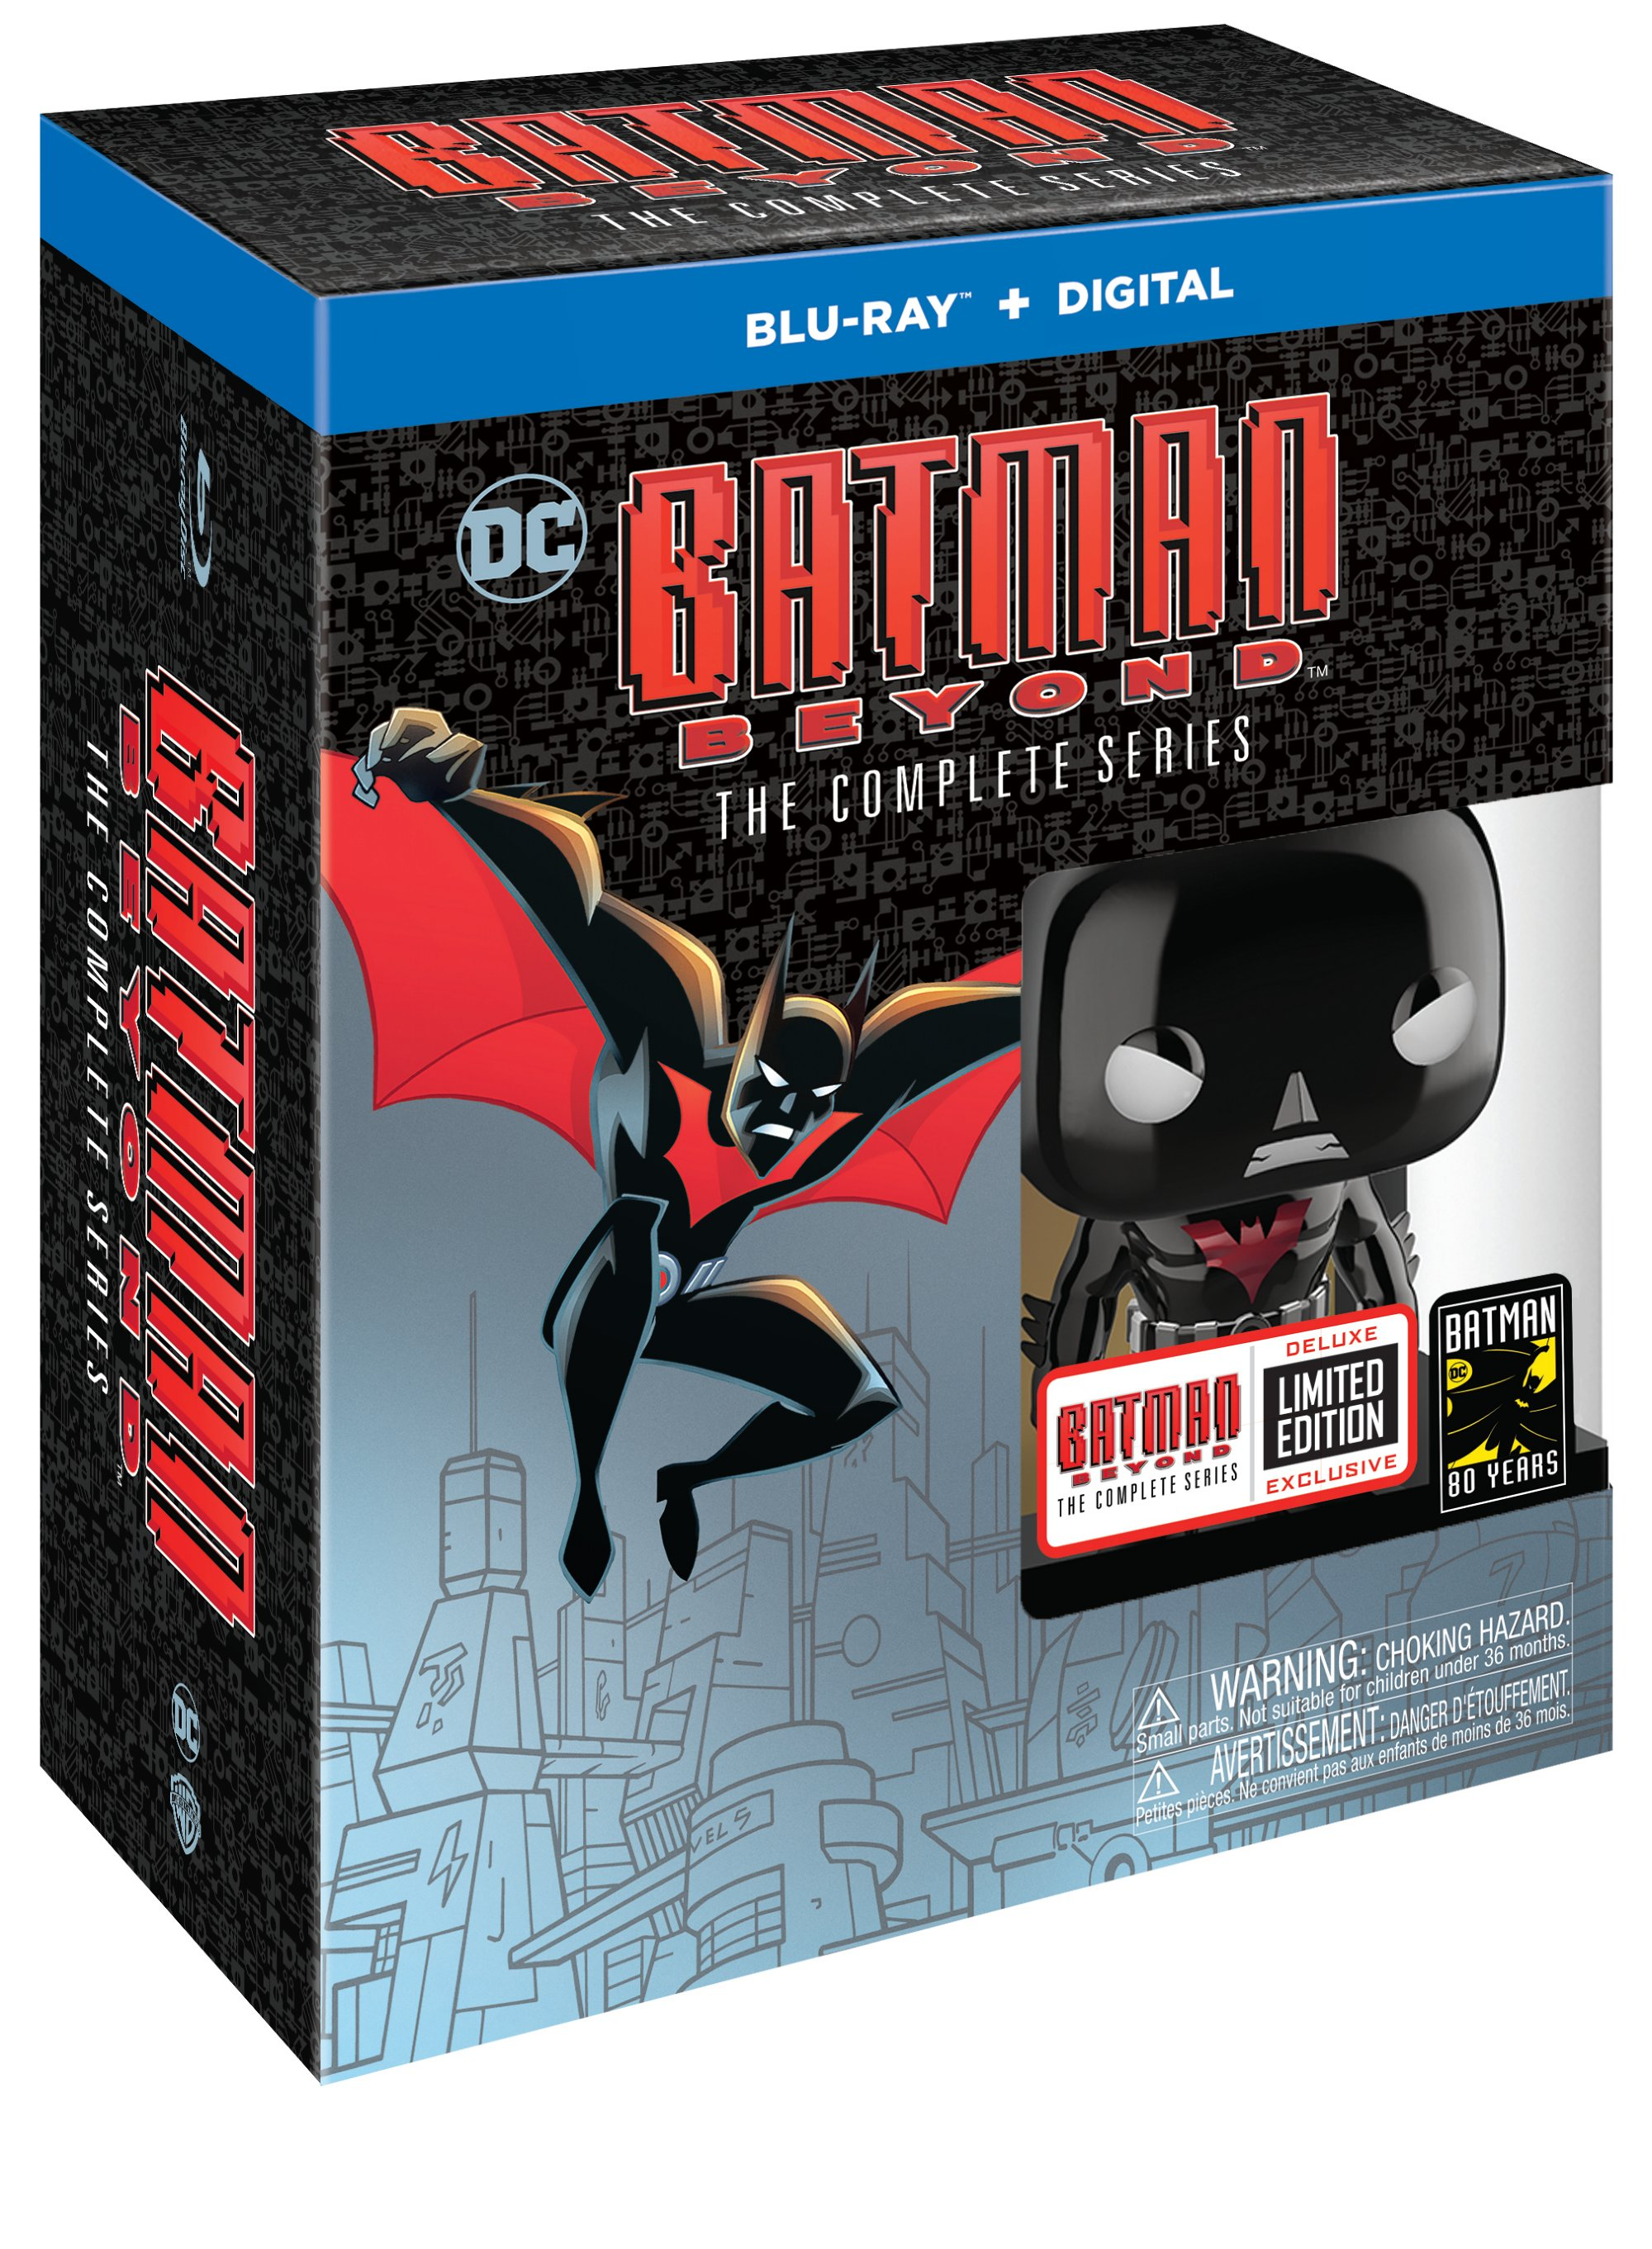 Batman Beyond: The Complete Series (Blu-ray + Digital) by Warner Brothers